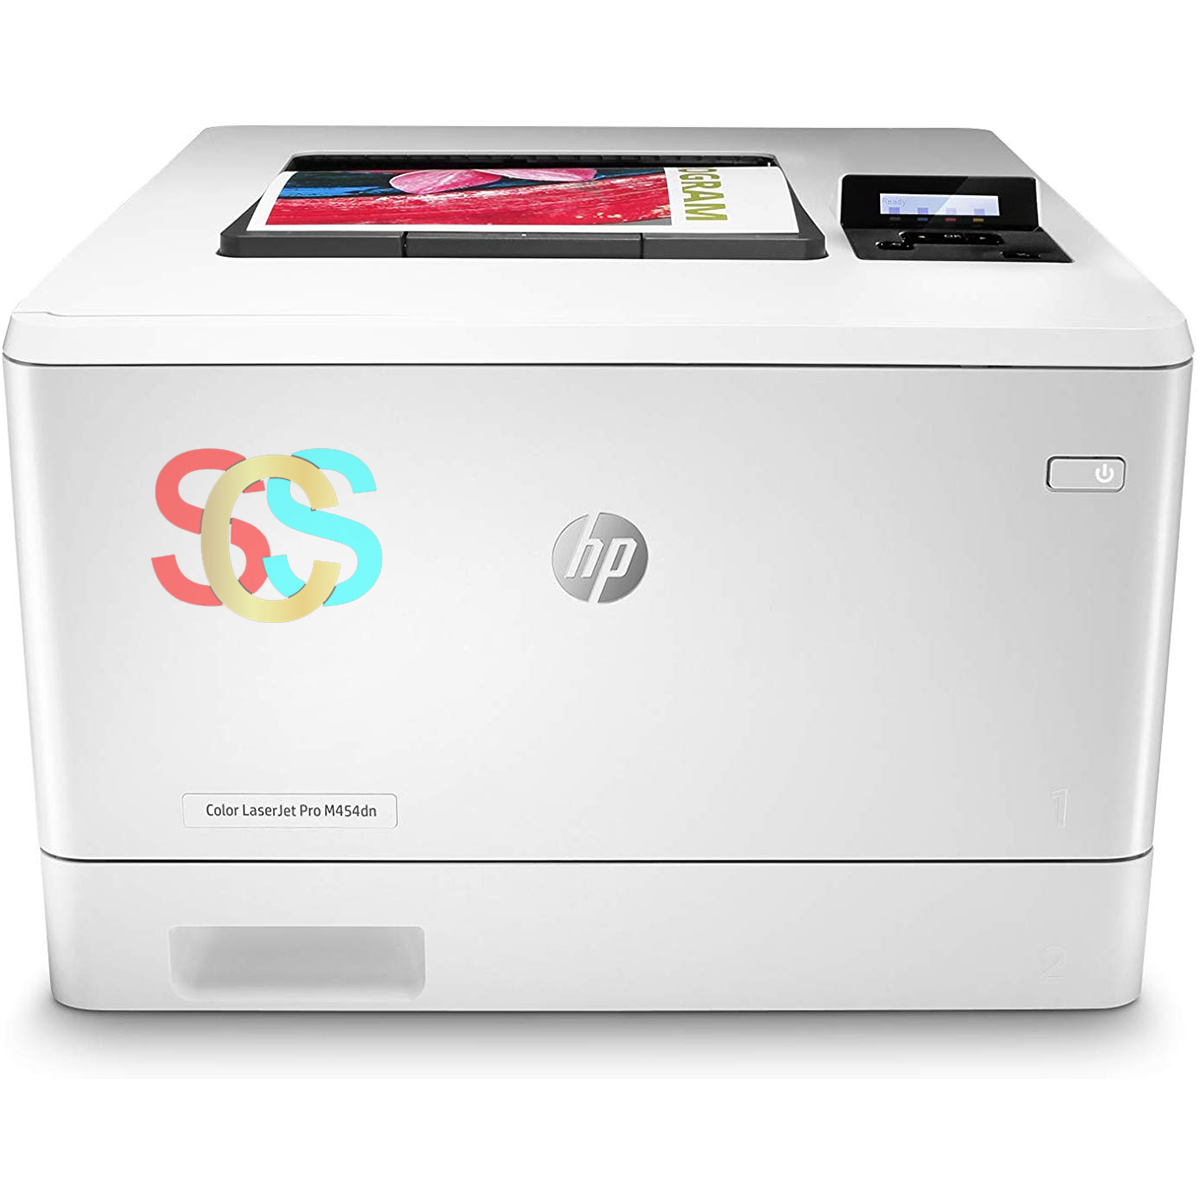 HP Pro M454nw Single Function Color Laser Printer